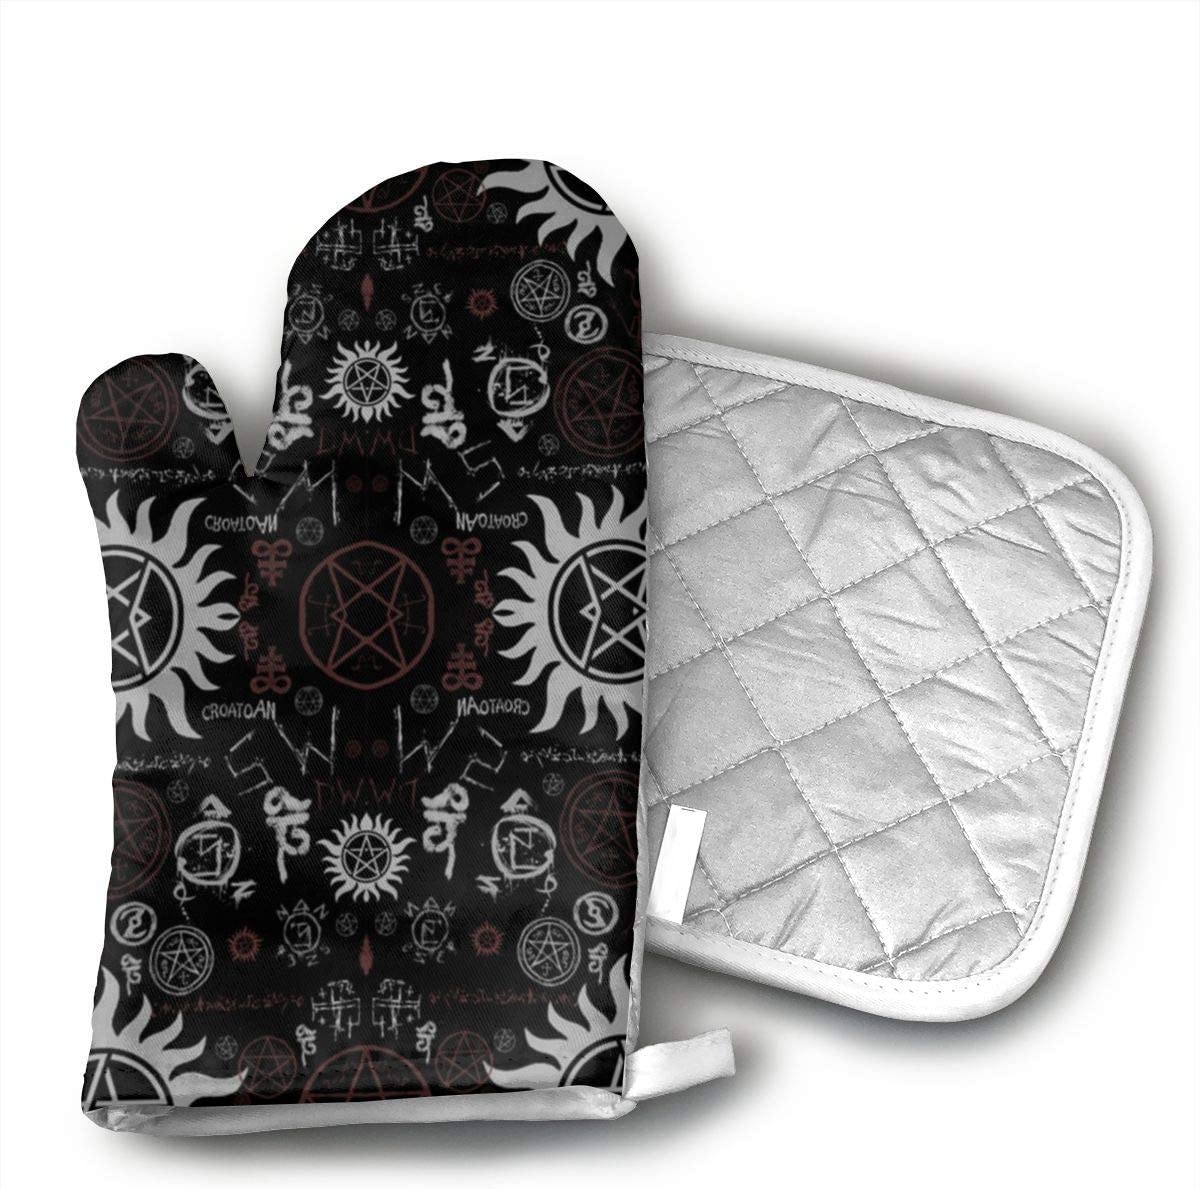 Wiqo9 Supernatural Symbols Black Oven Mitts and Pot Holders Kitchen Mitten Cooking Gloves,Cooking, Baking, BBQ.